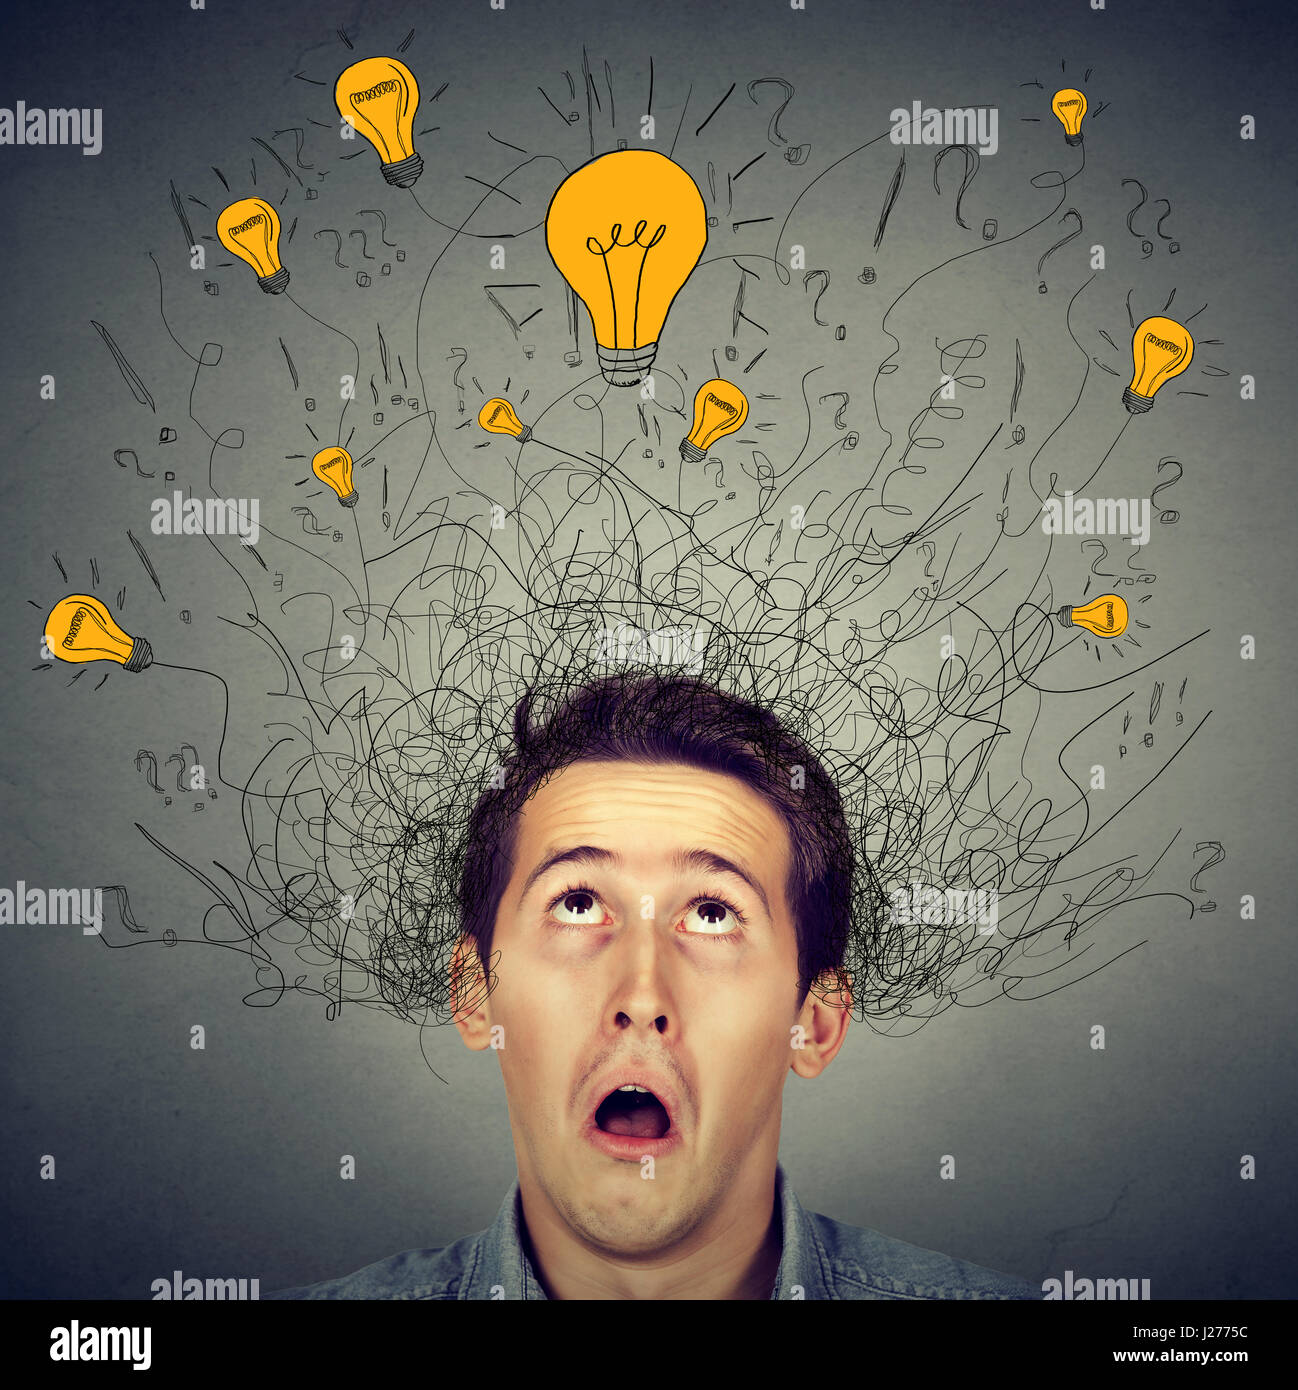 Surprised man with many ideas light bulbs above head looking up isolated on gray wall background. Eureka creativity - Stock Image